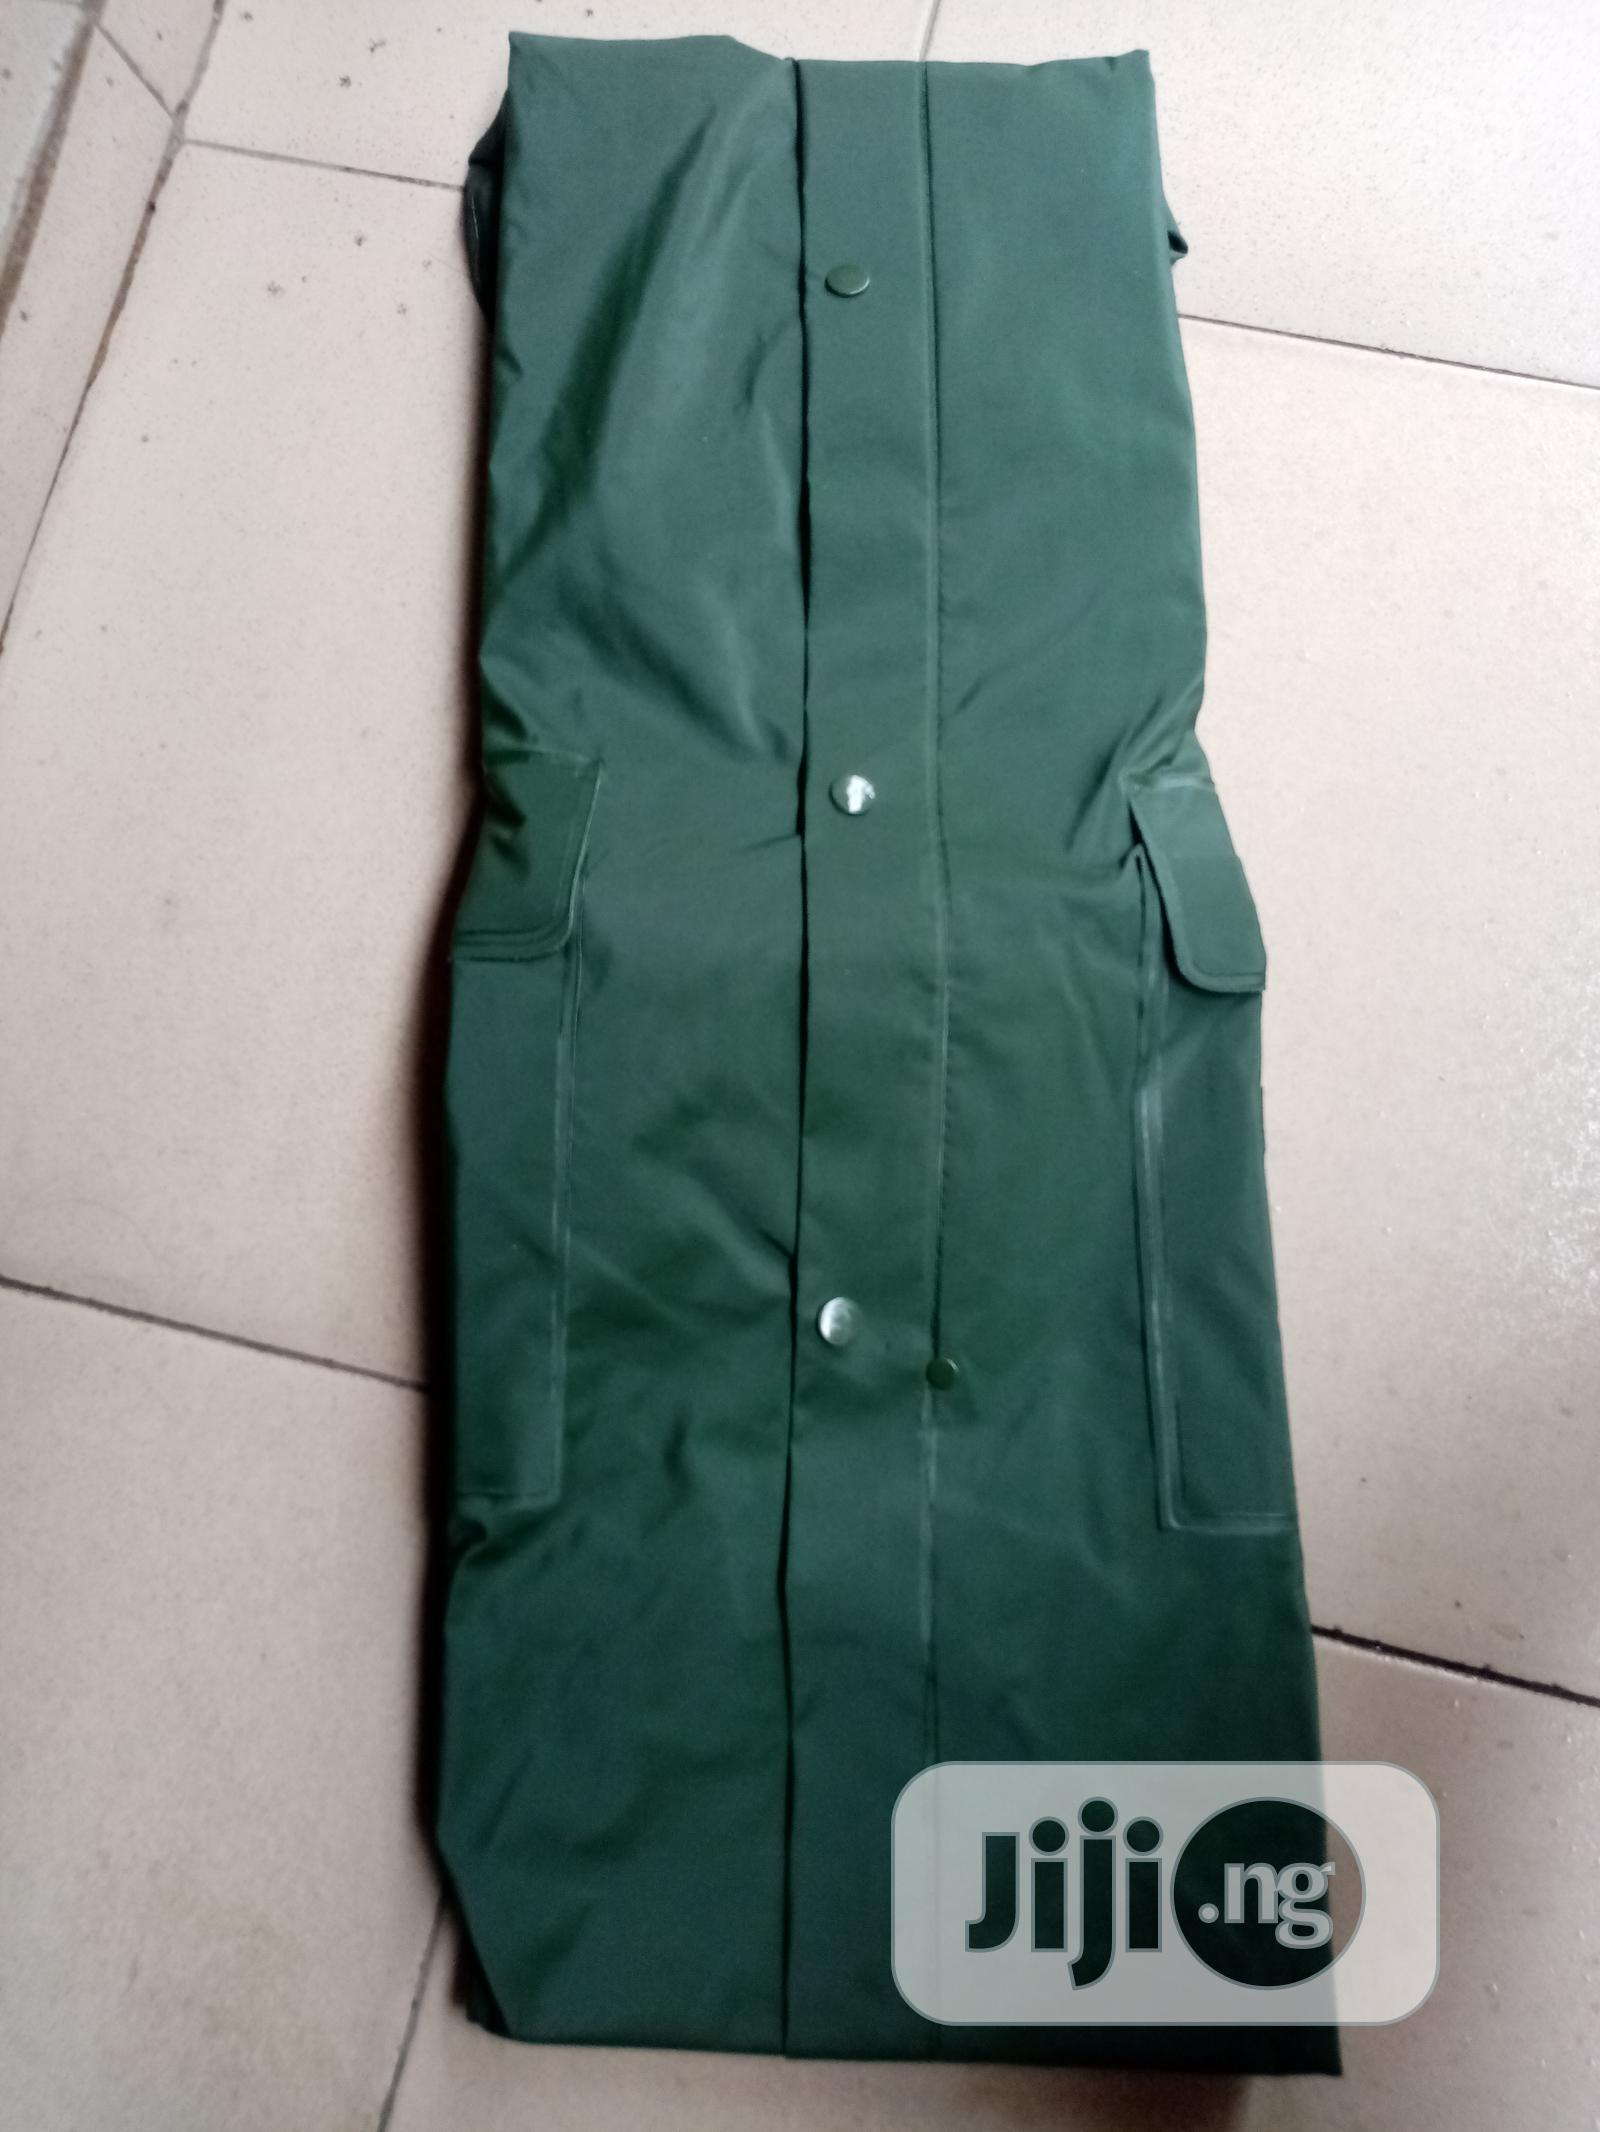 Rain Coat PVC | Safetywear & Equipment for sale in Amuwo-Odofin, Lagos State, Nigeria